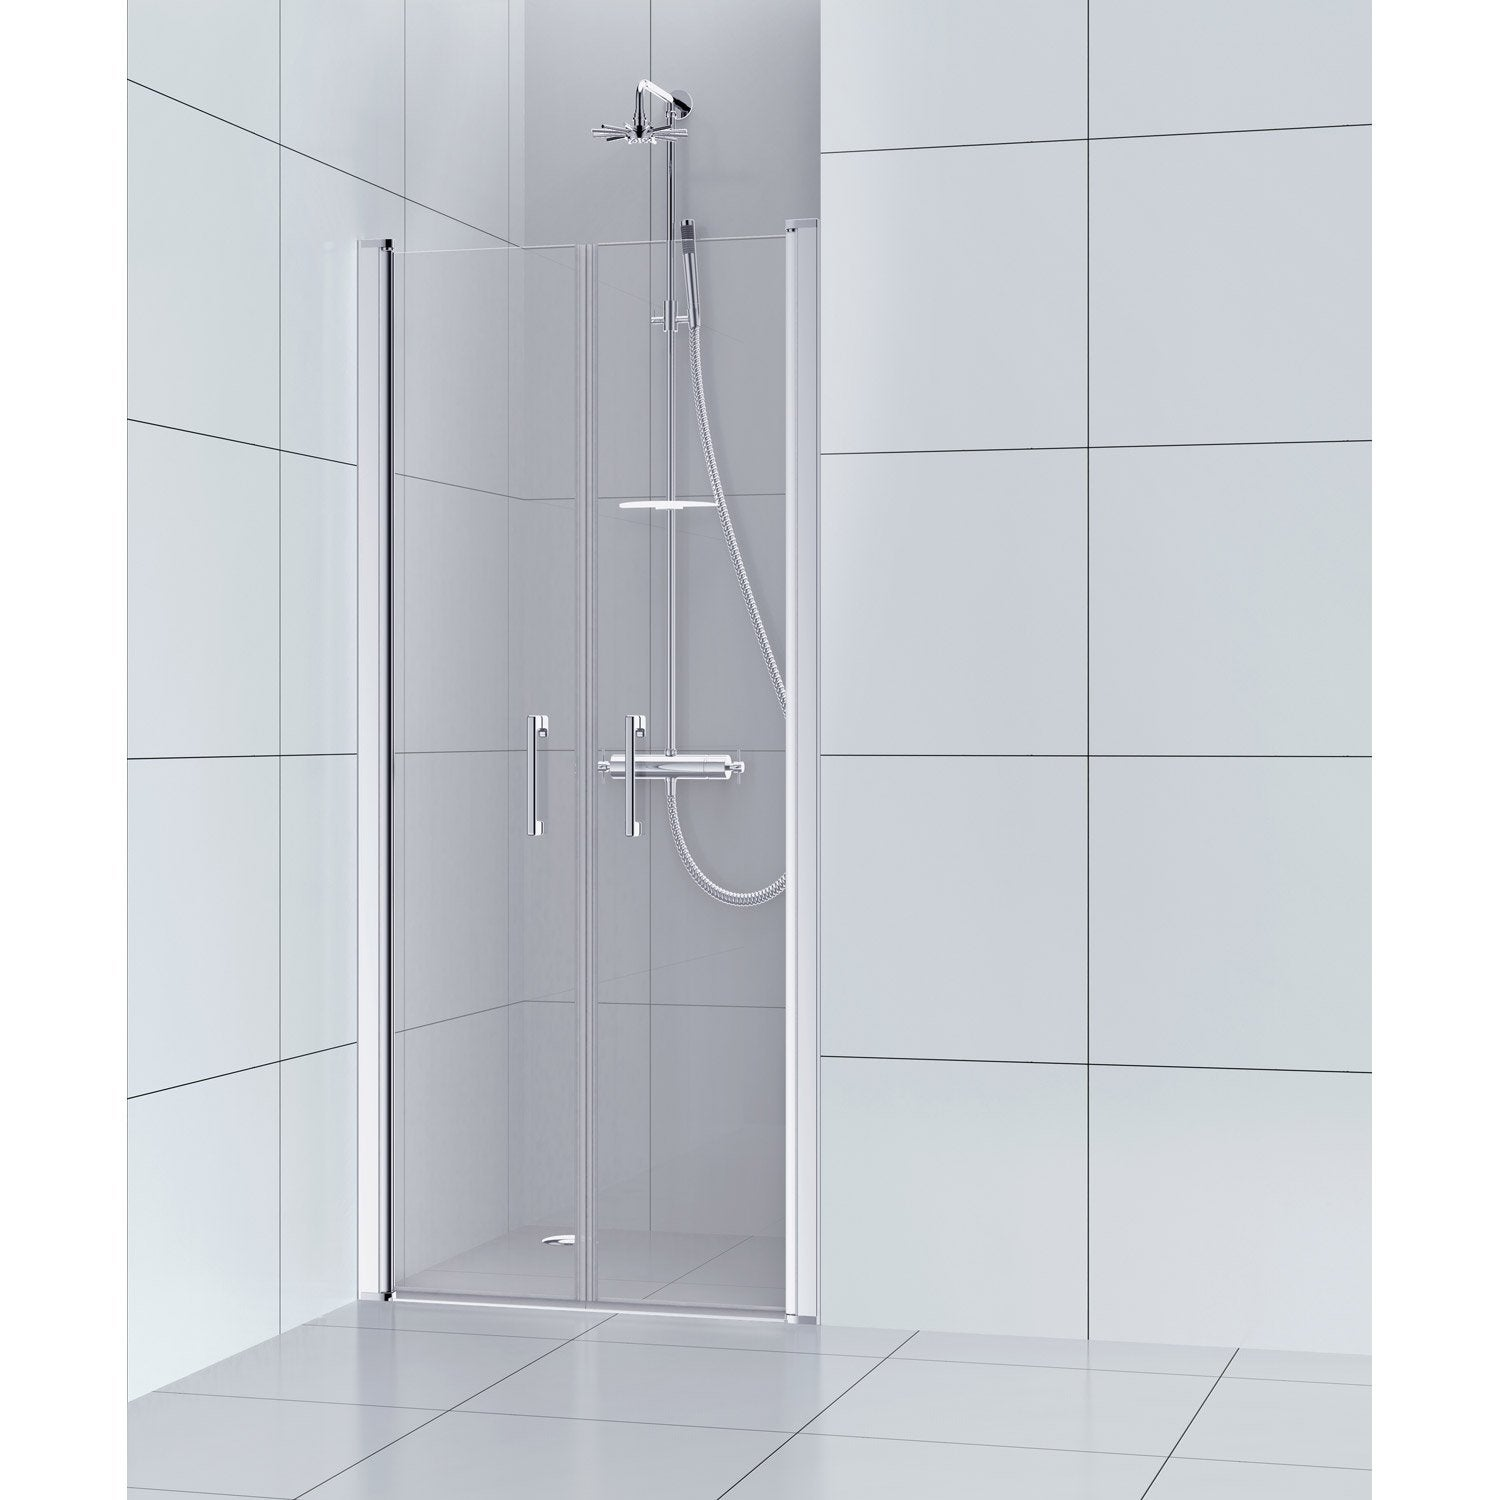 Porte de douche battante 90 cm transparent remix leroy for Porte de saloon leroy merlin